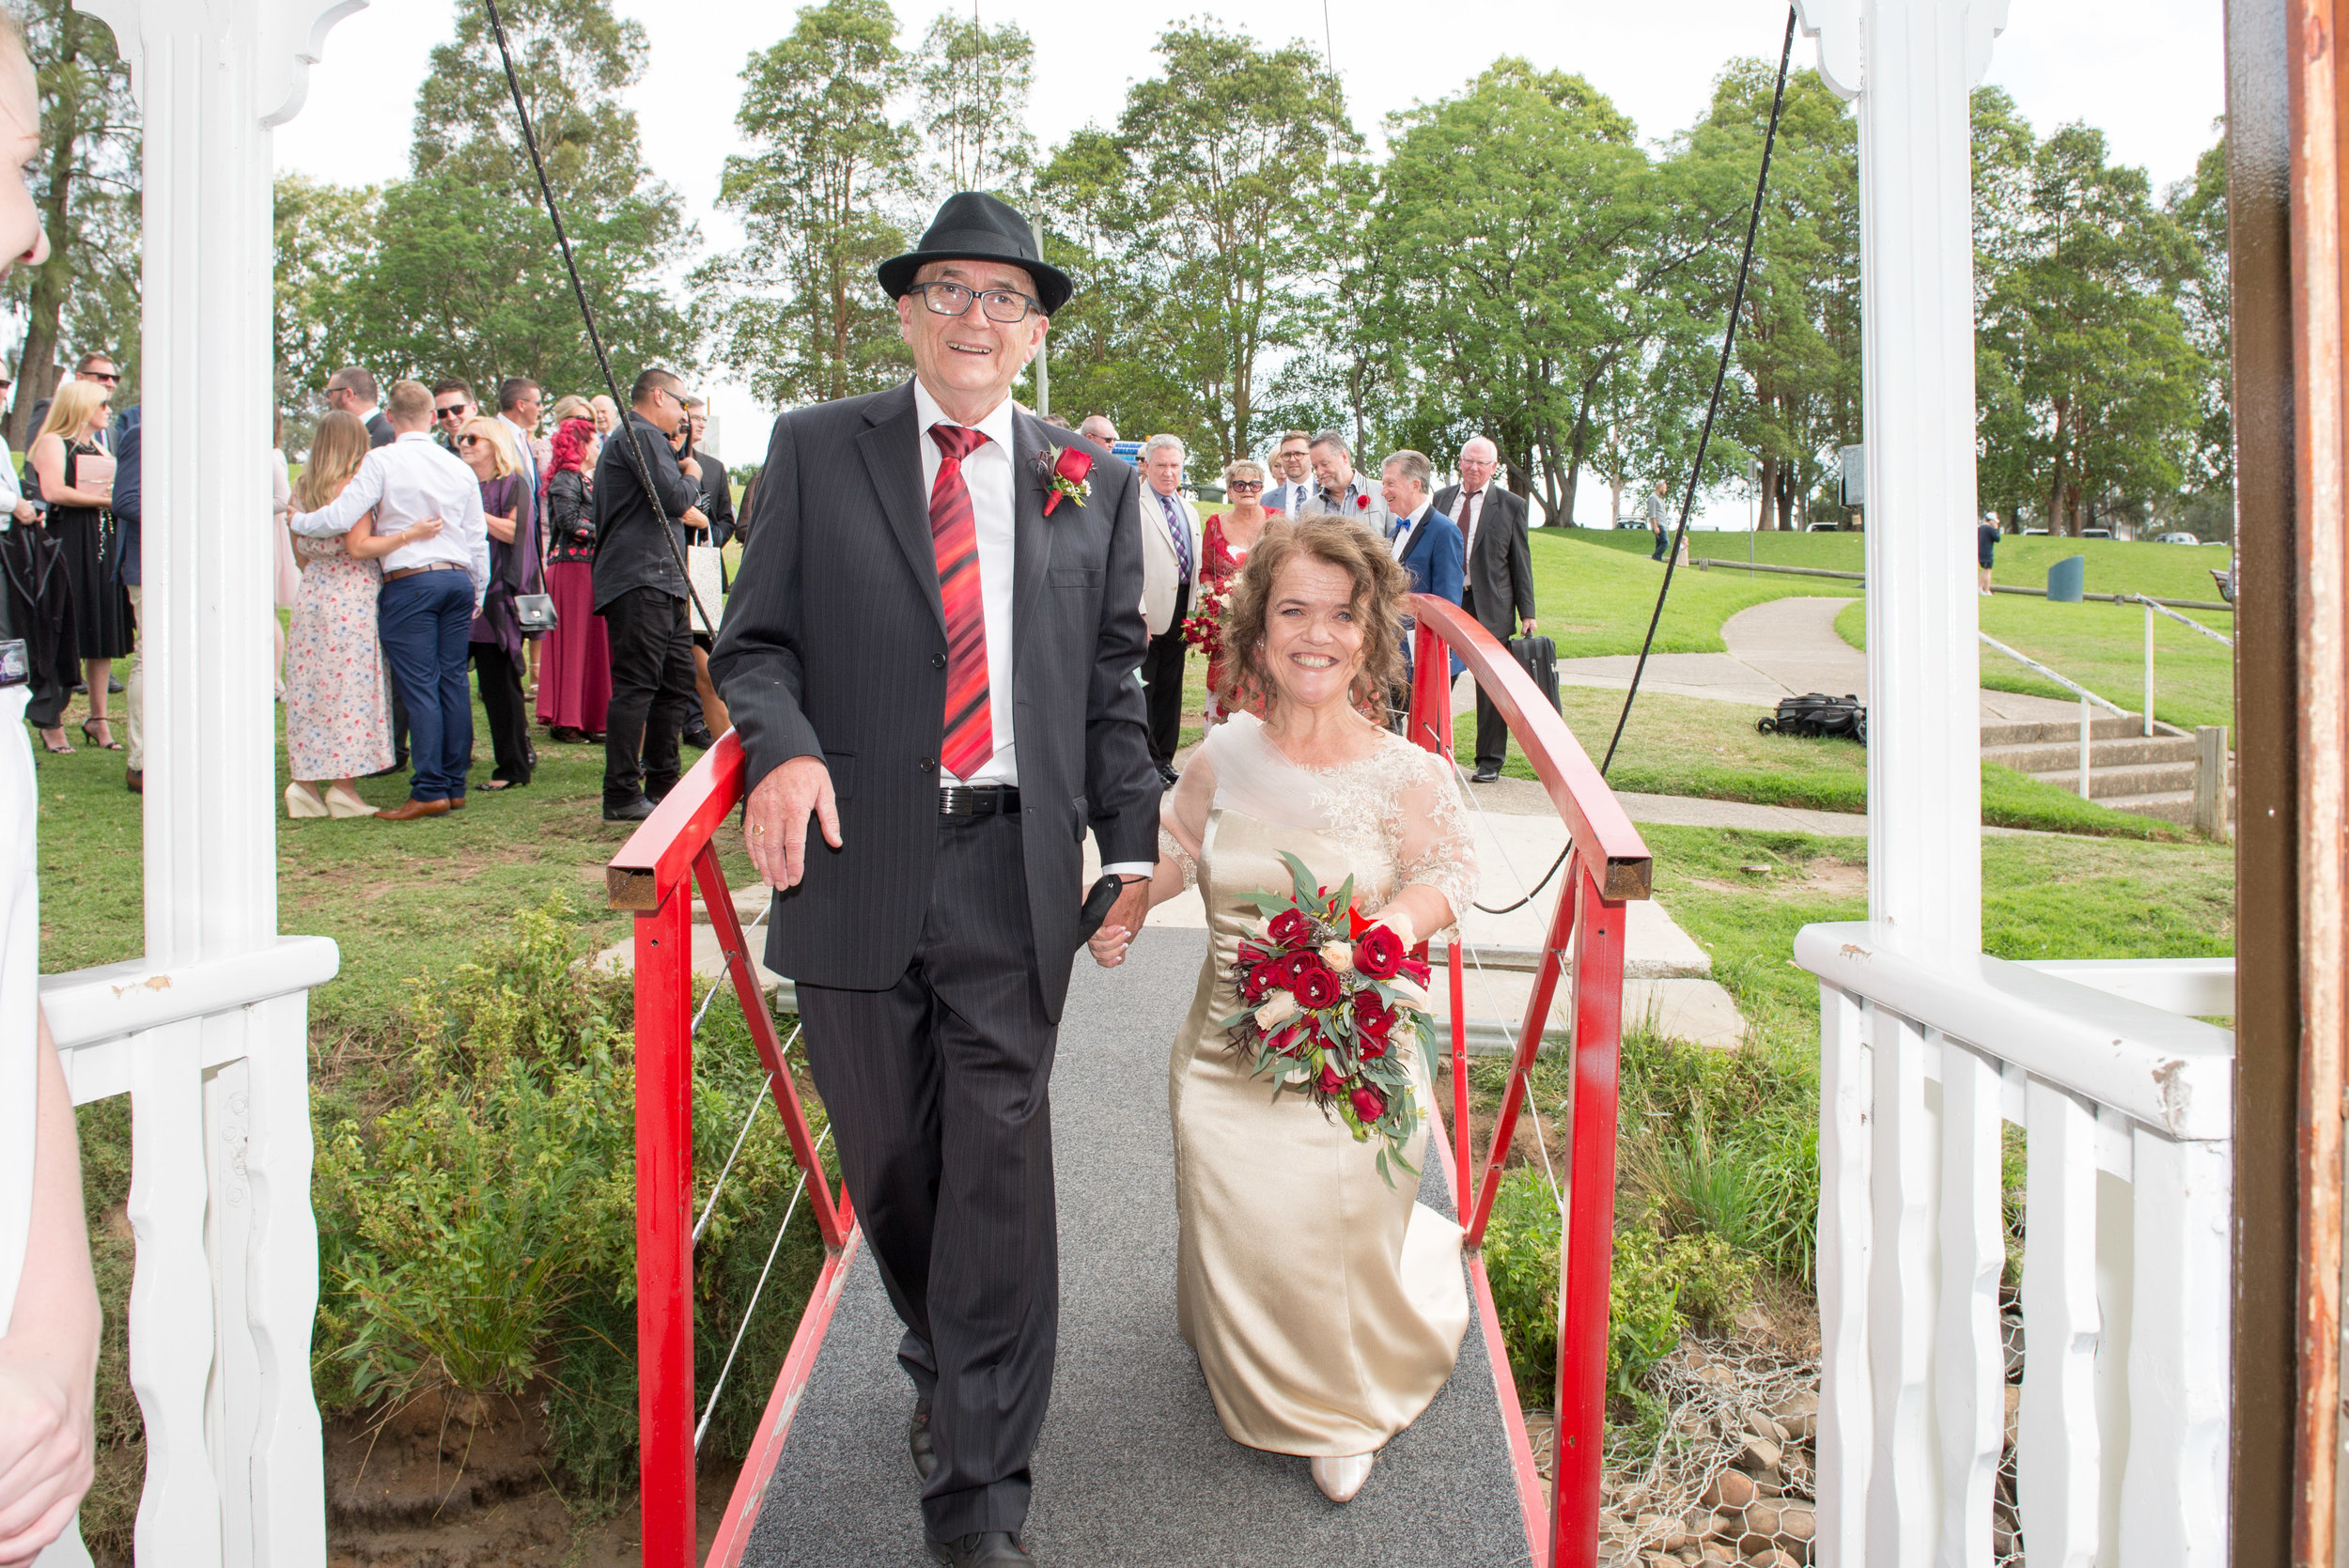 Belle wedding gangway board enter bride groom red jetty guests.jpg